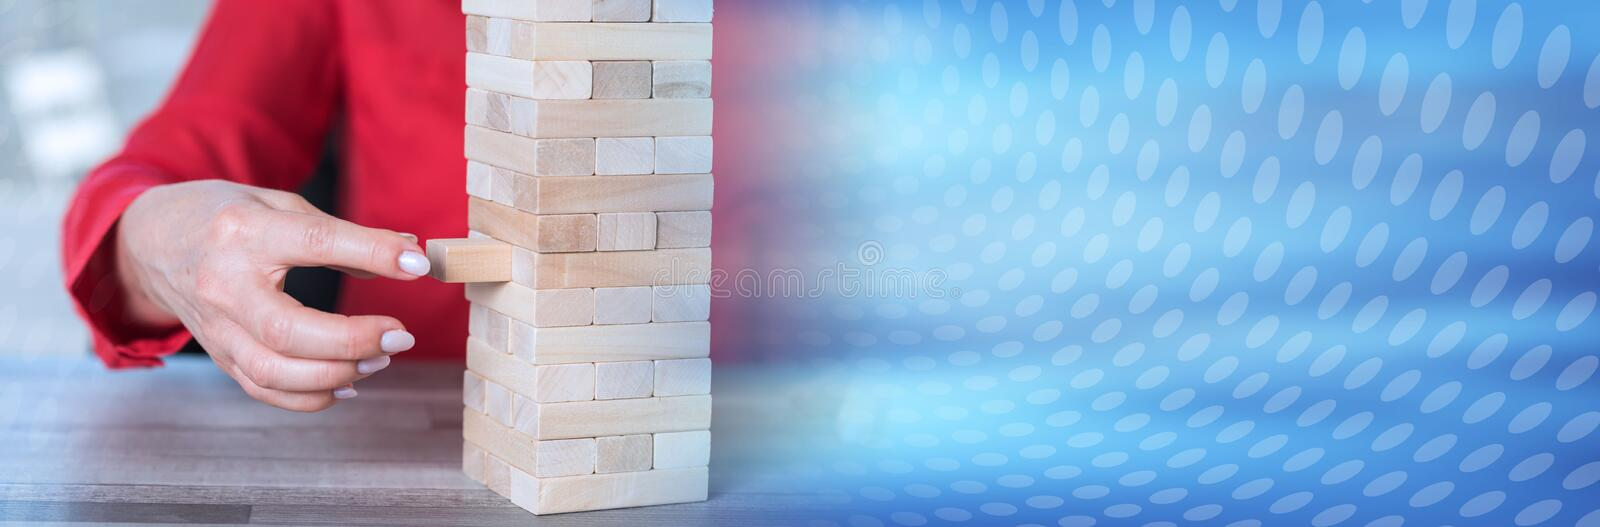 Concept of business risk. panoramic banner. Concept of business risk with domino blocks. panoramic banner royalty free stock photo